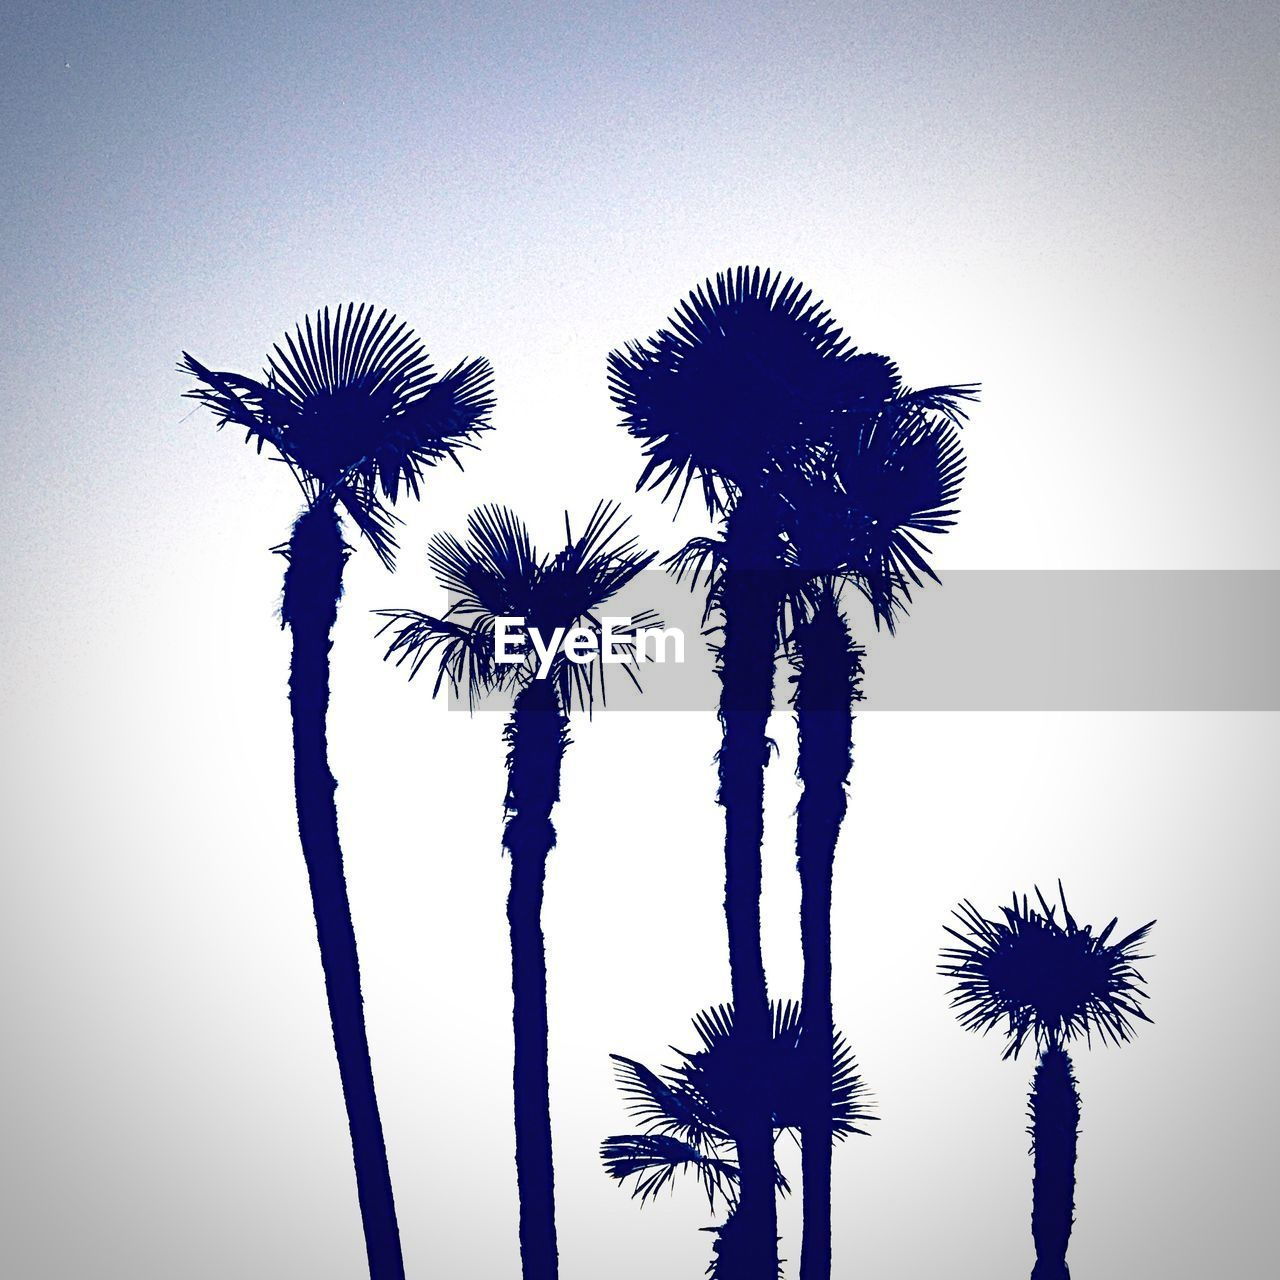 sky, plant, palm tree, tropical climate, growth, low angle view, tree, nature, beauty in nature, no people, clear sky, silhouette, tranquility, outdoors, tree trunk, trunk, tall - high, scenics - nature, day, plant stem, tropical tree, coconut palm tree, flower head